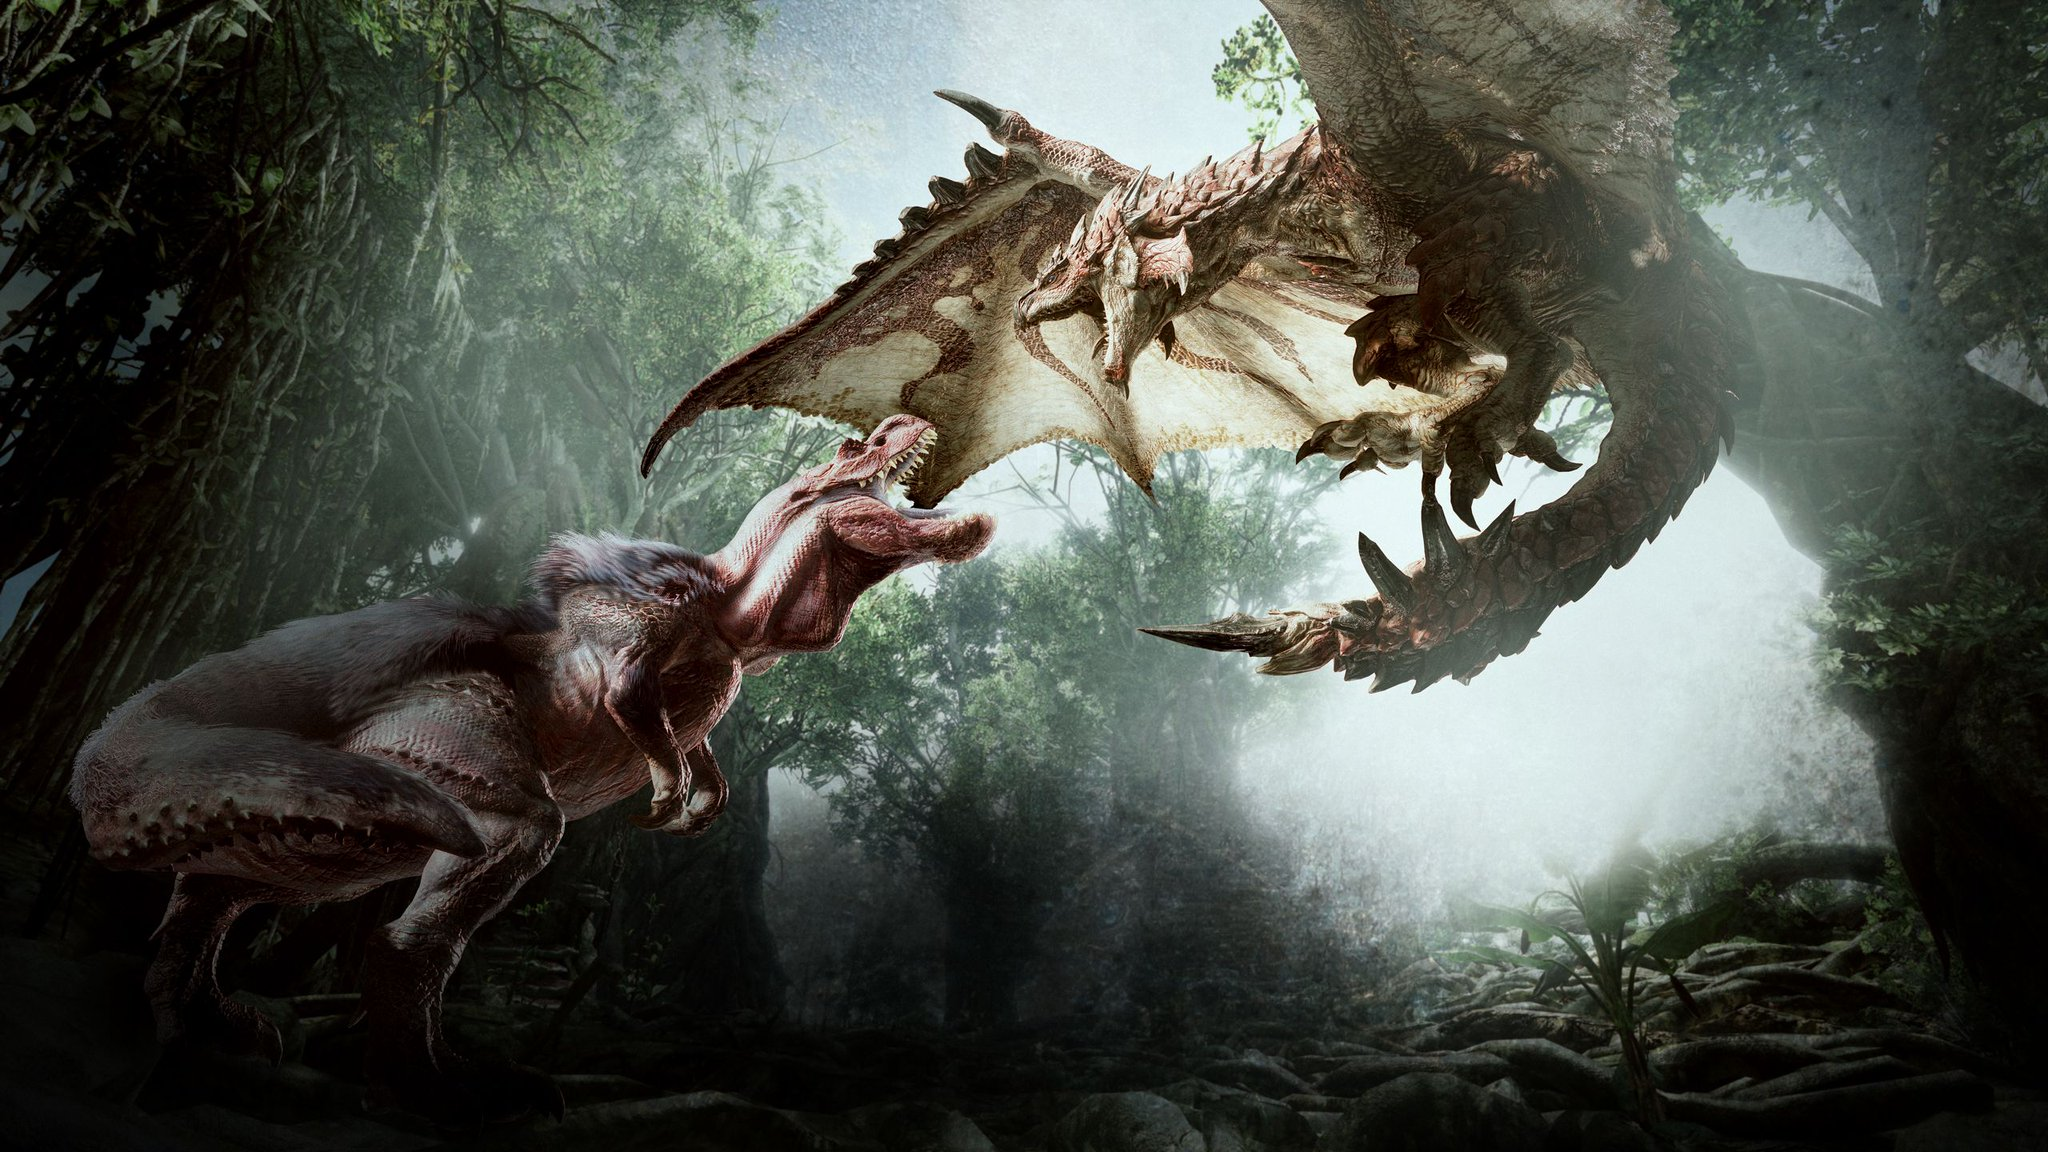 We played the Monster Hunter: World beta, and we're hungry for more https://t.co/dE1ua7HPqb https://t.co/fETL8sQwss